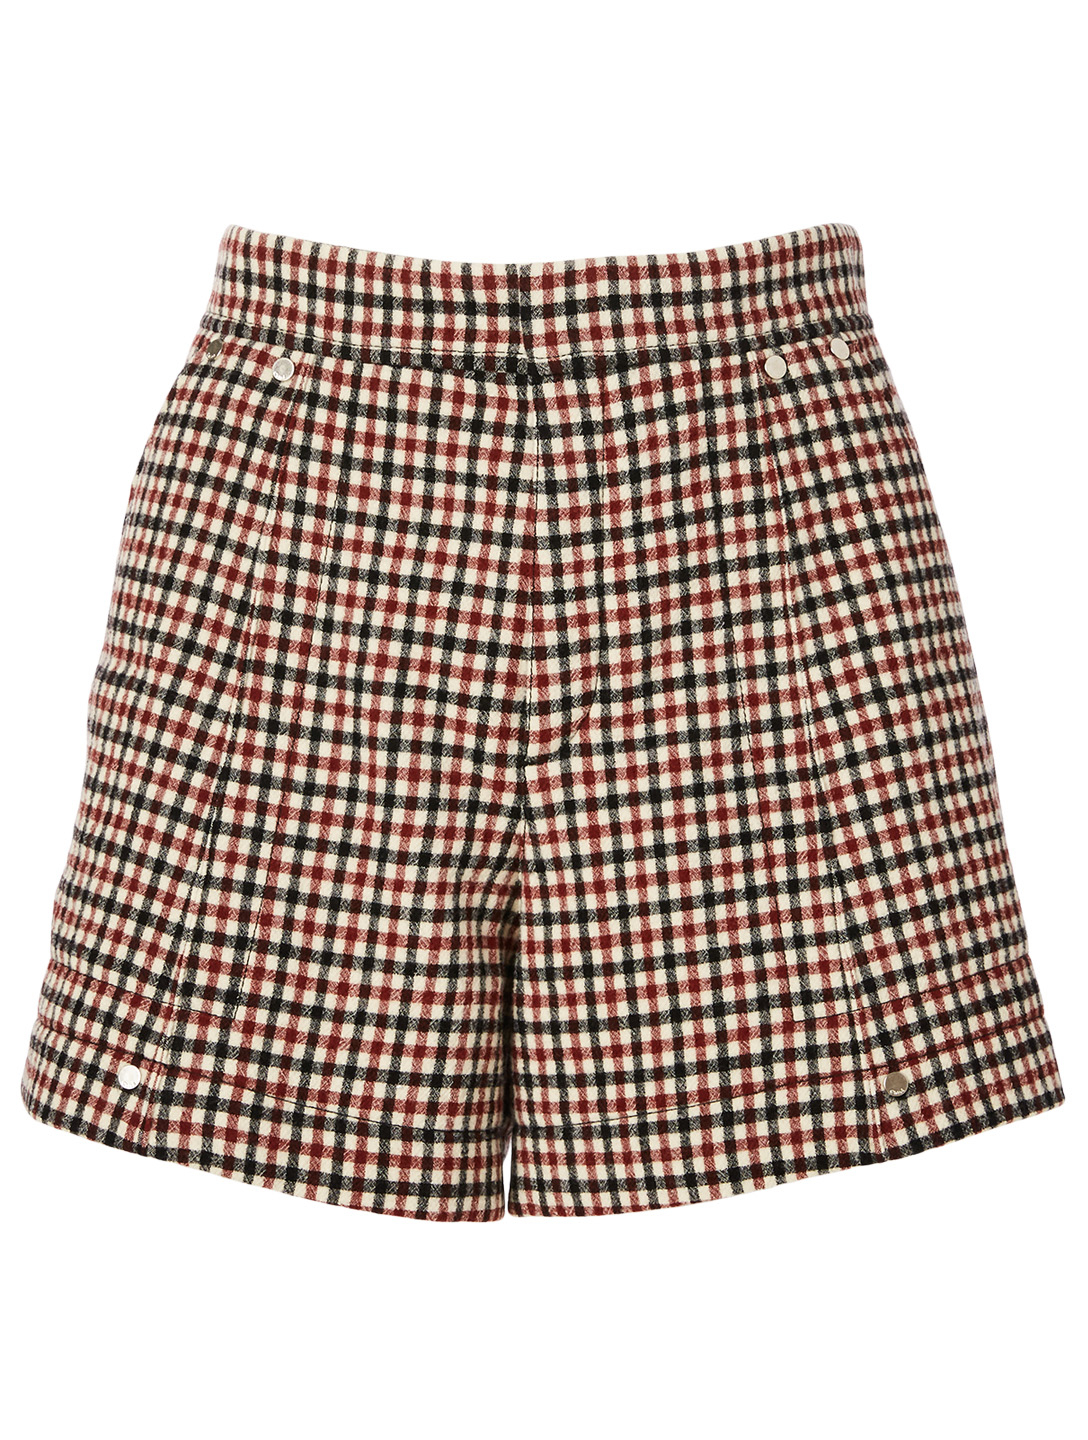 CHLOÉ Wool High-Waisted Shorts In Check Print Women's Red